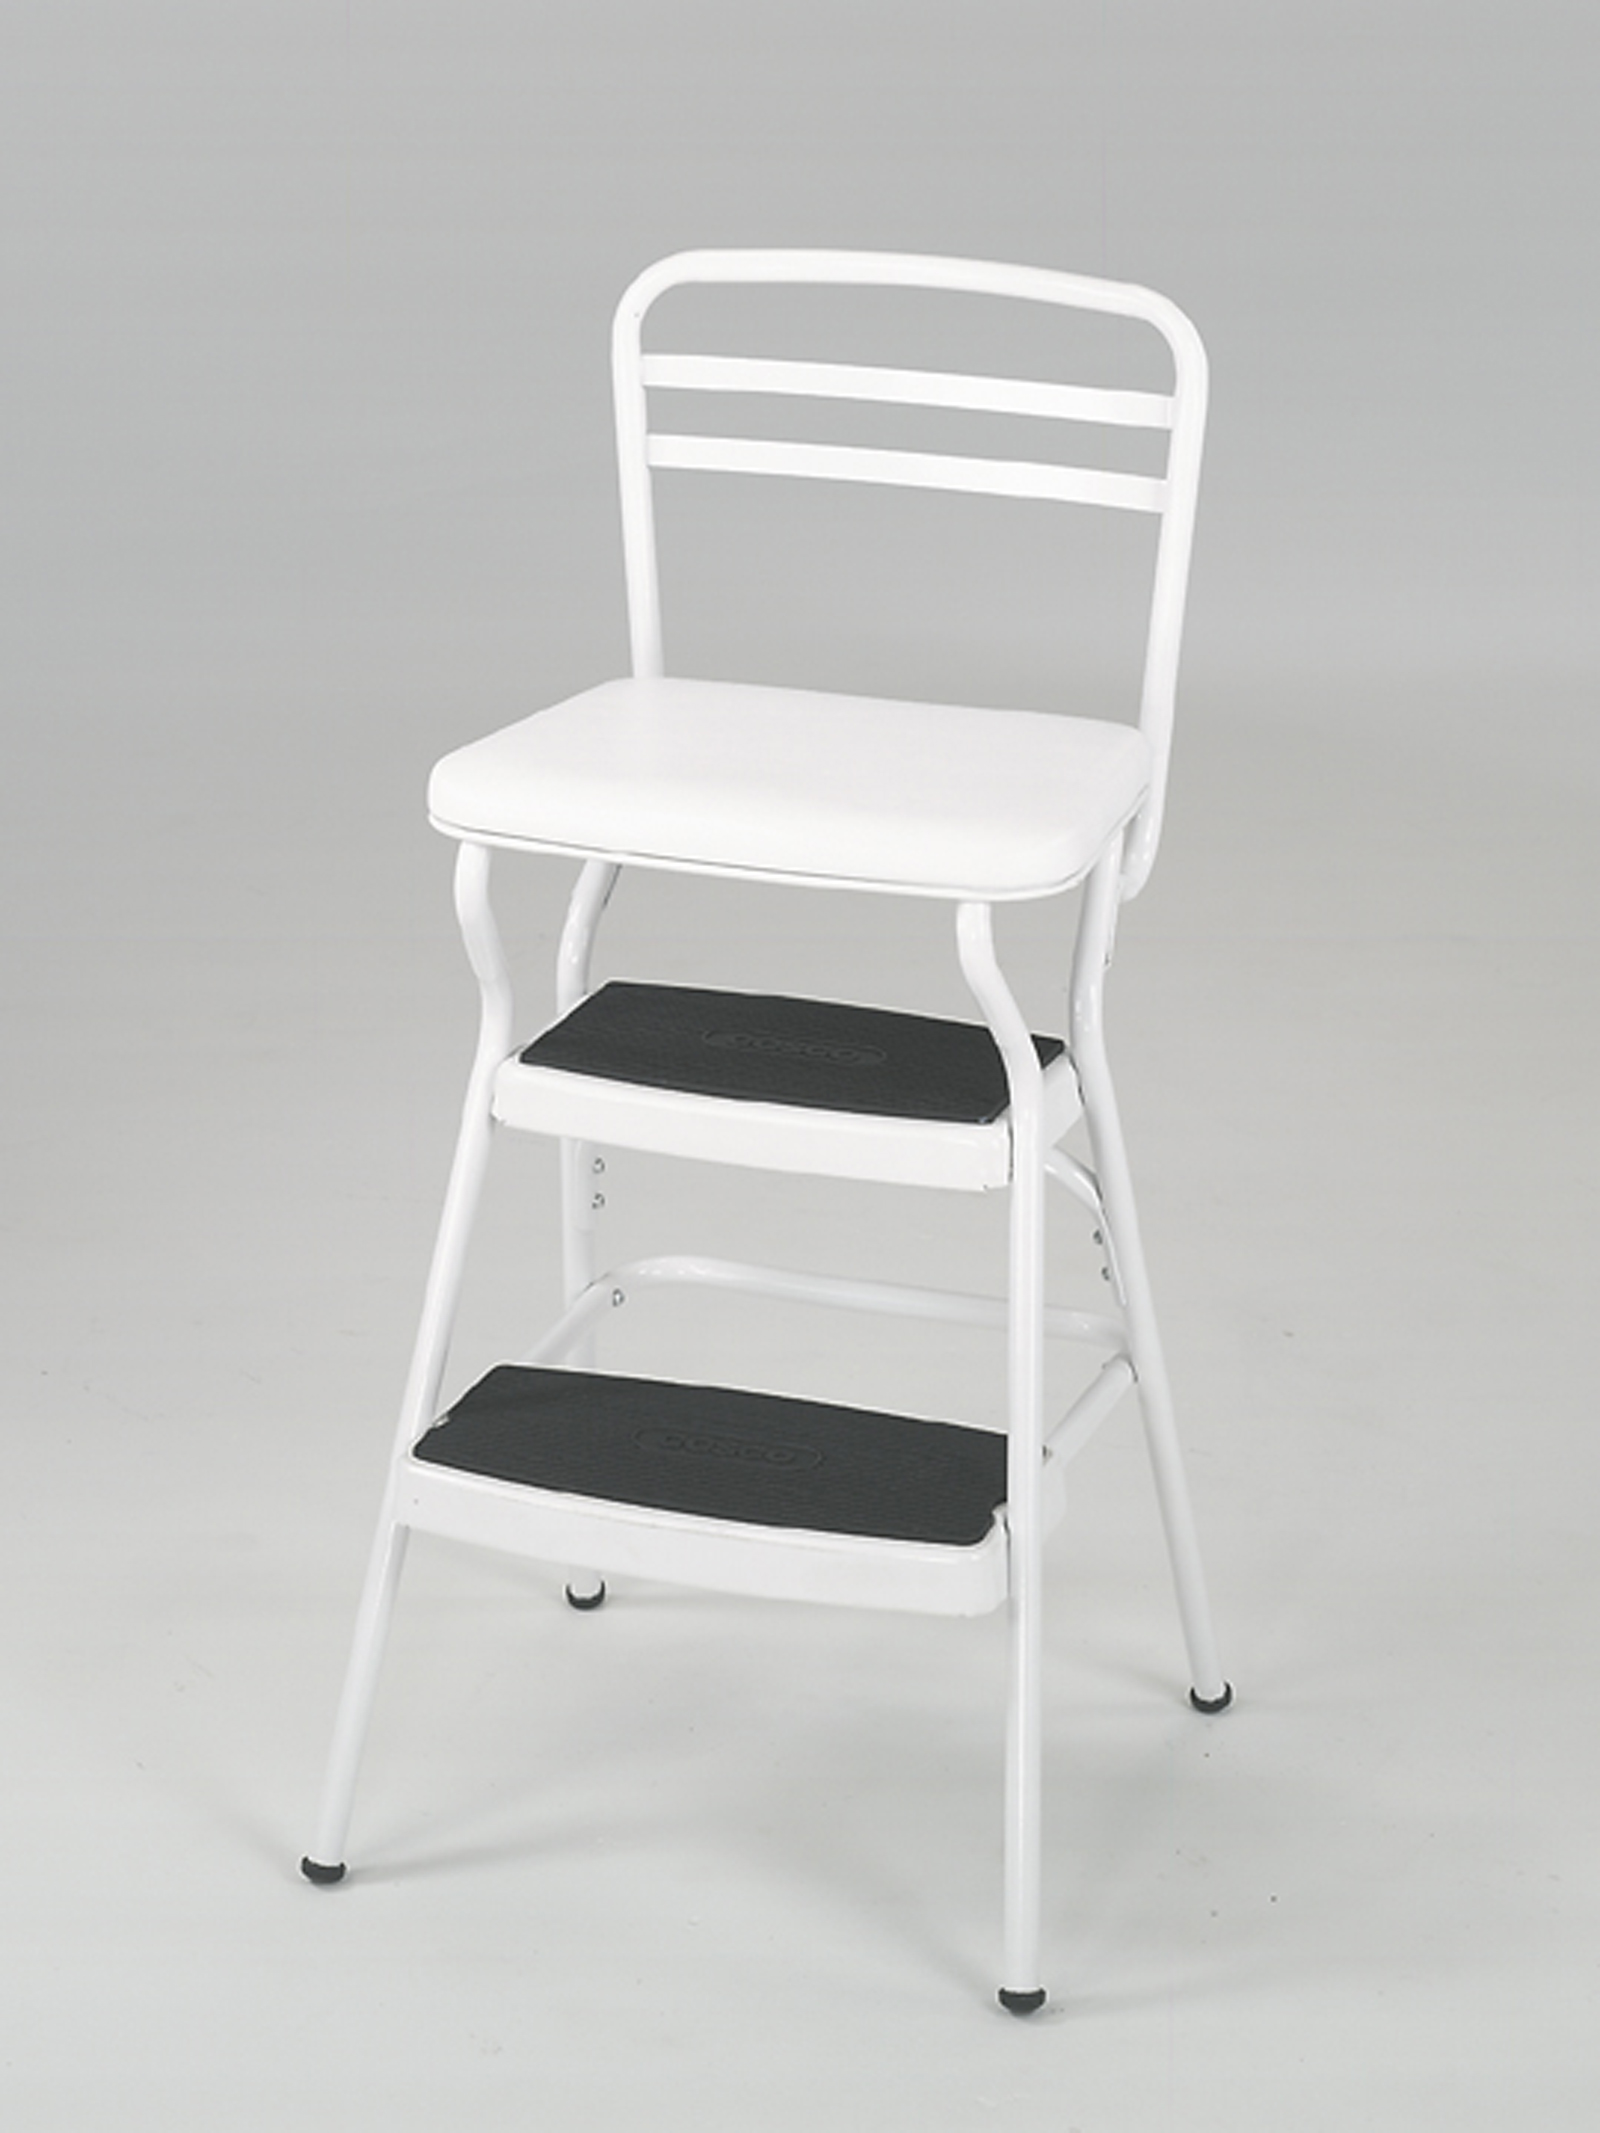 Cosco Step Stool Chair Cosco Home And Office Products White Retro Counter Chair